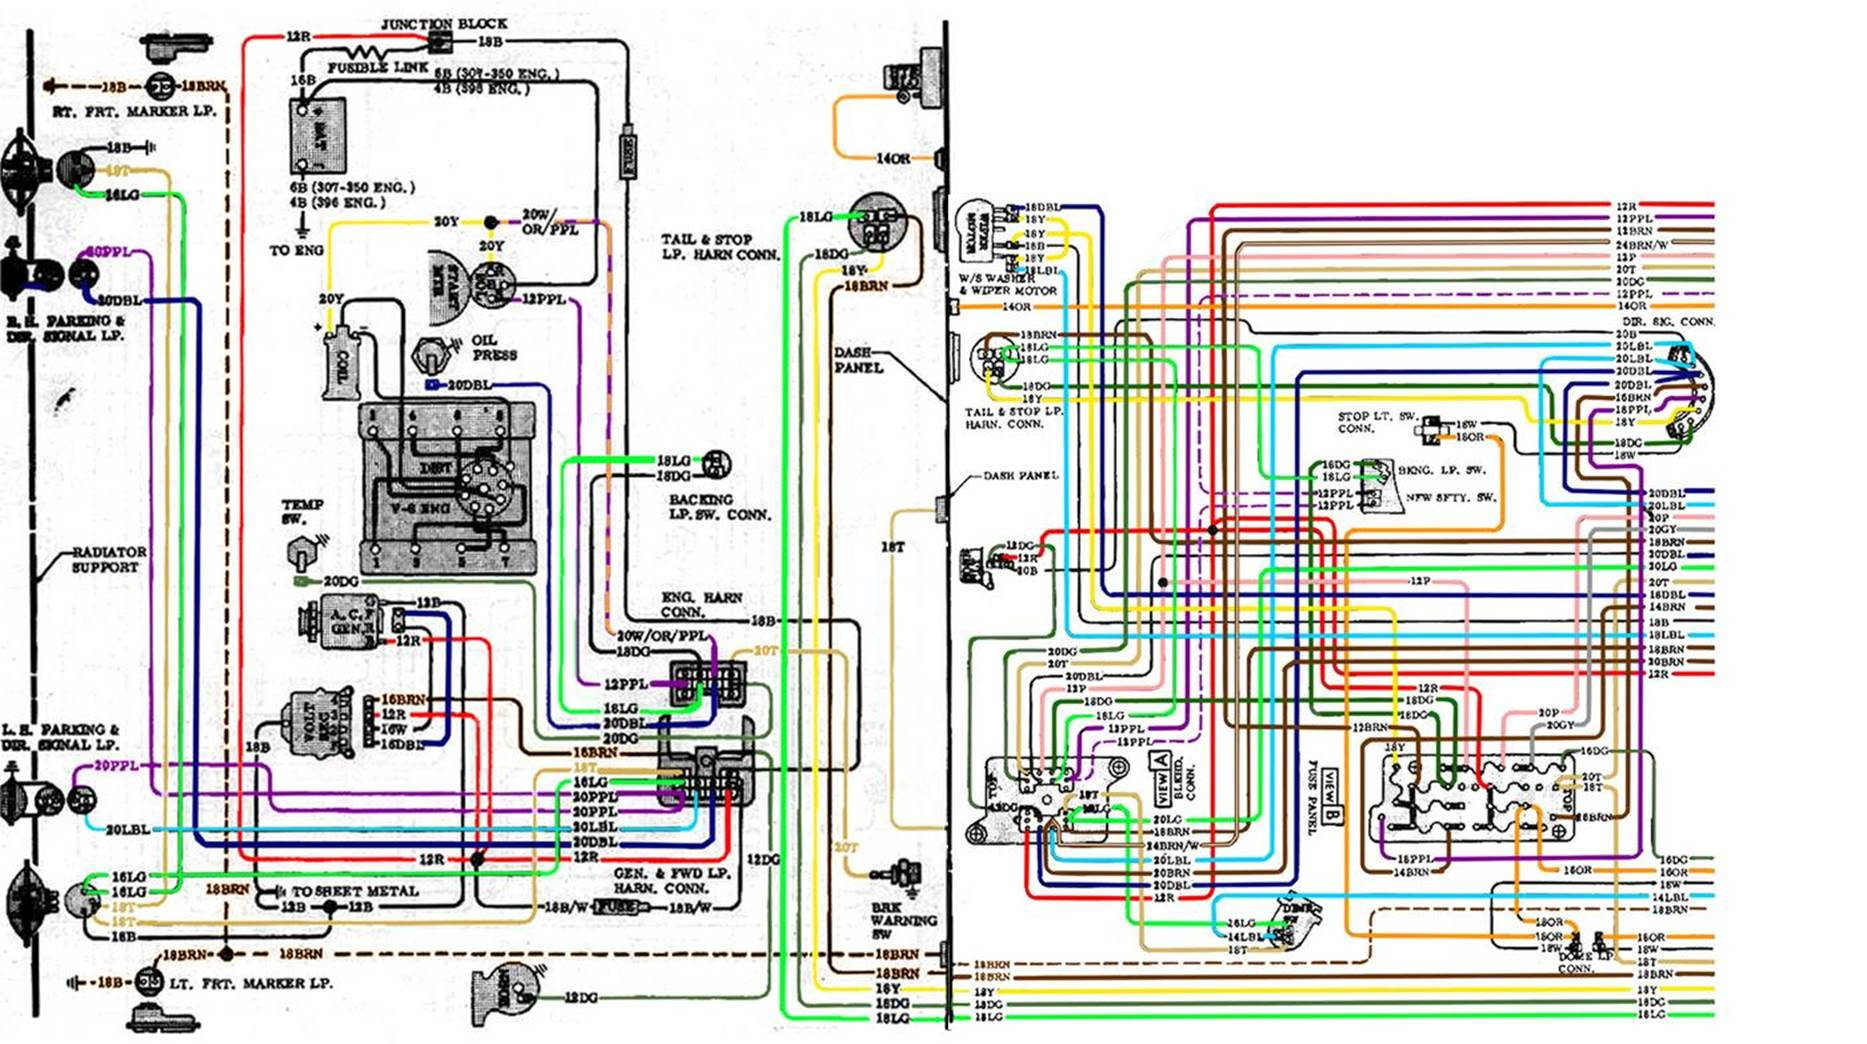 c10 wiring harness wiring diagram rh blaknwyt co 1965 Chevy C10 Wiring Harnesses 1969 chevy c10 painless wiring harness